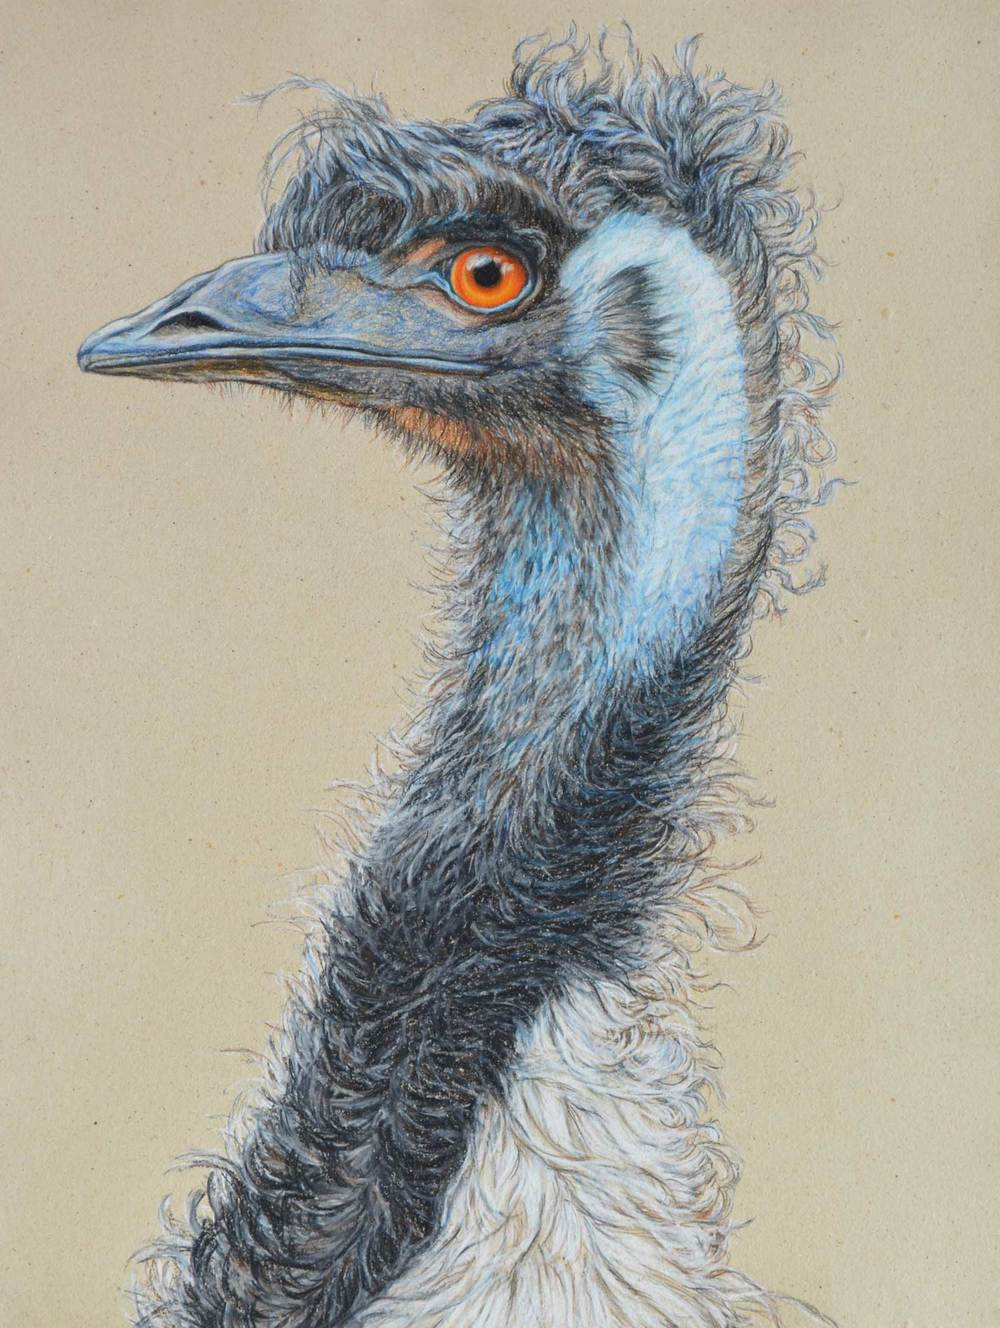 Emu portrait    65 x 49 cm                                                       Pastel on handmade Paper                                                       SOLD